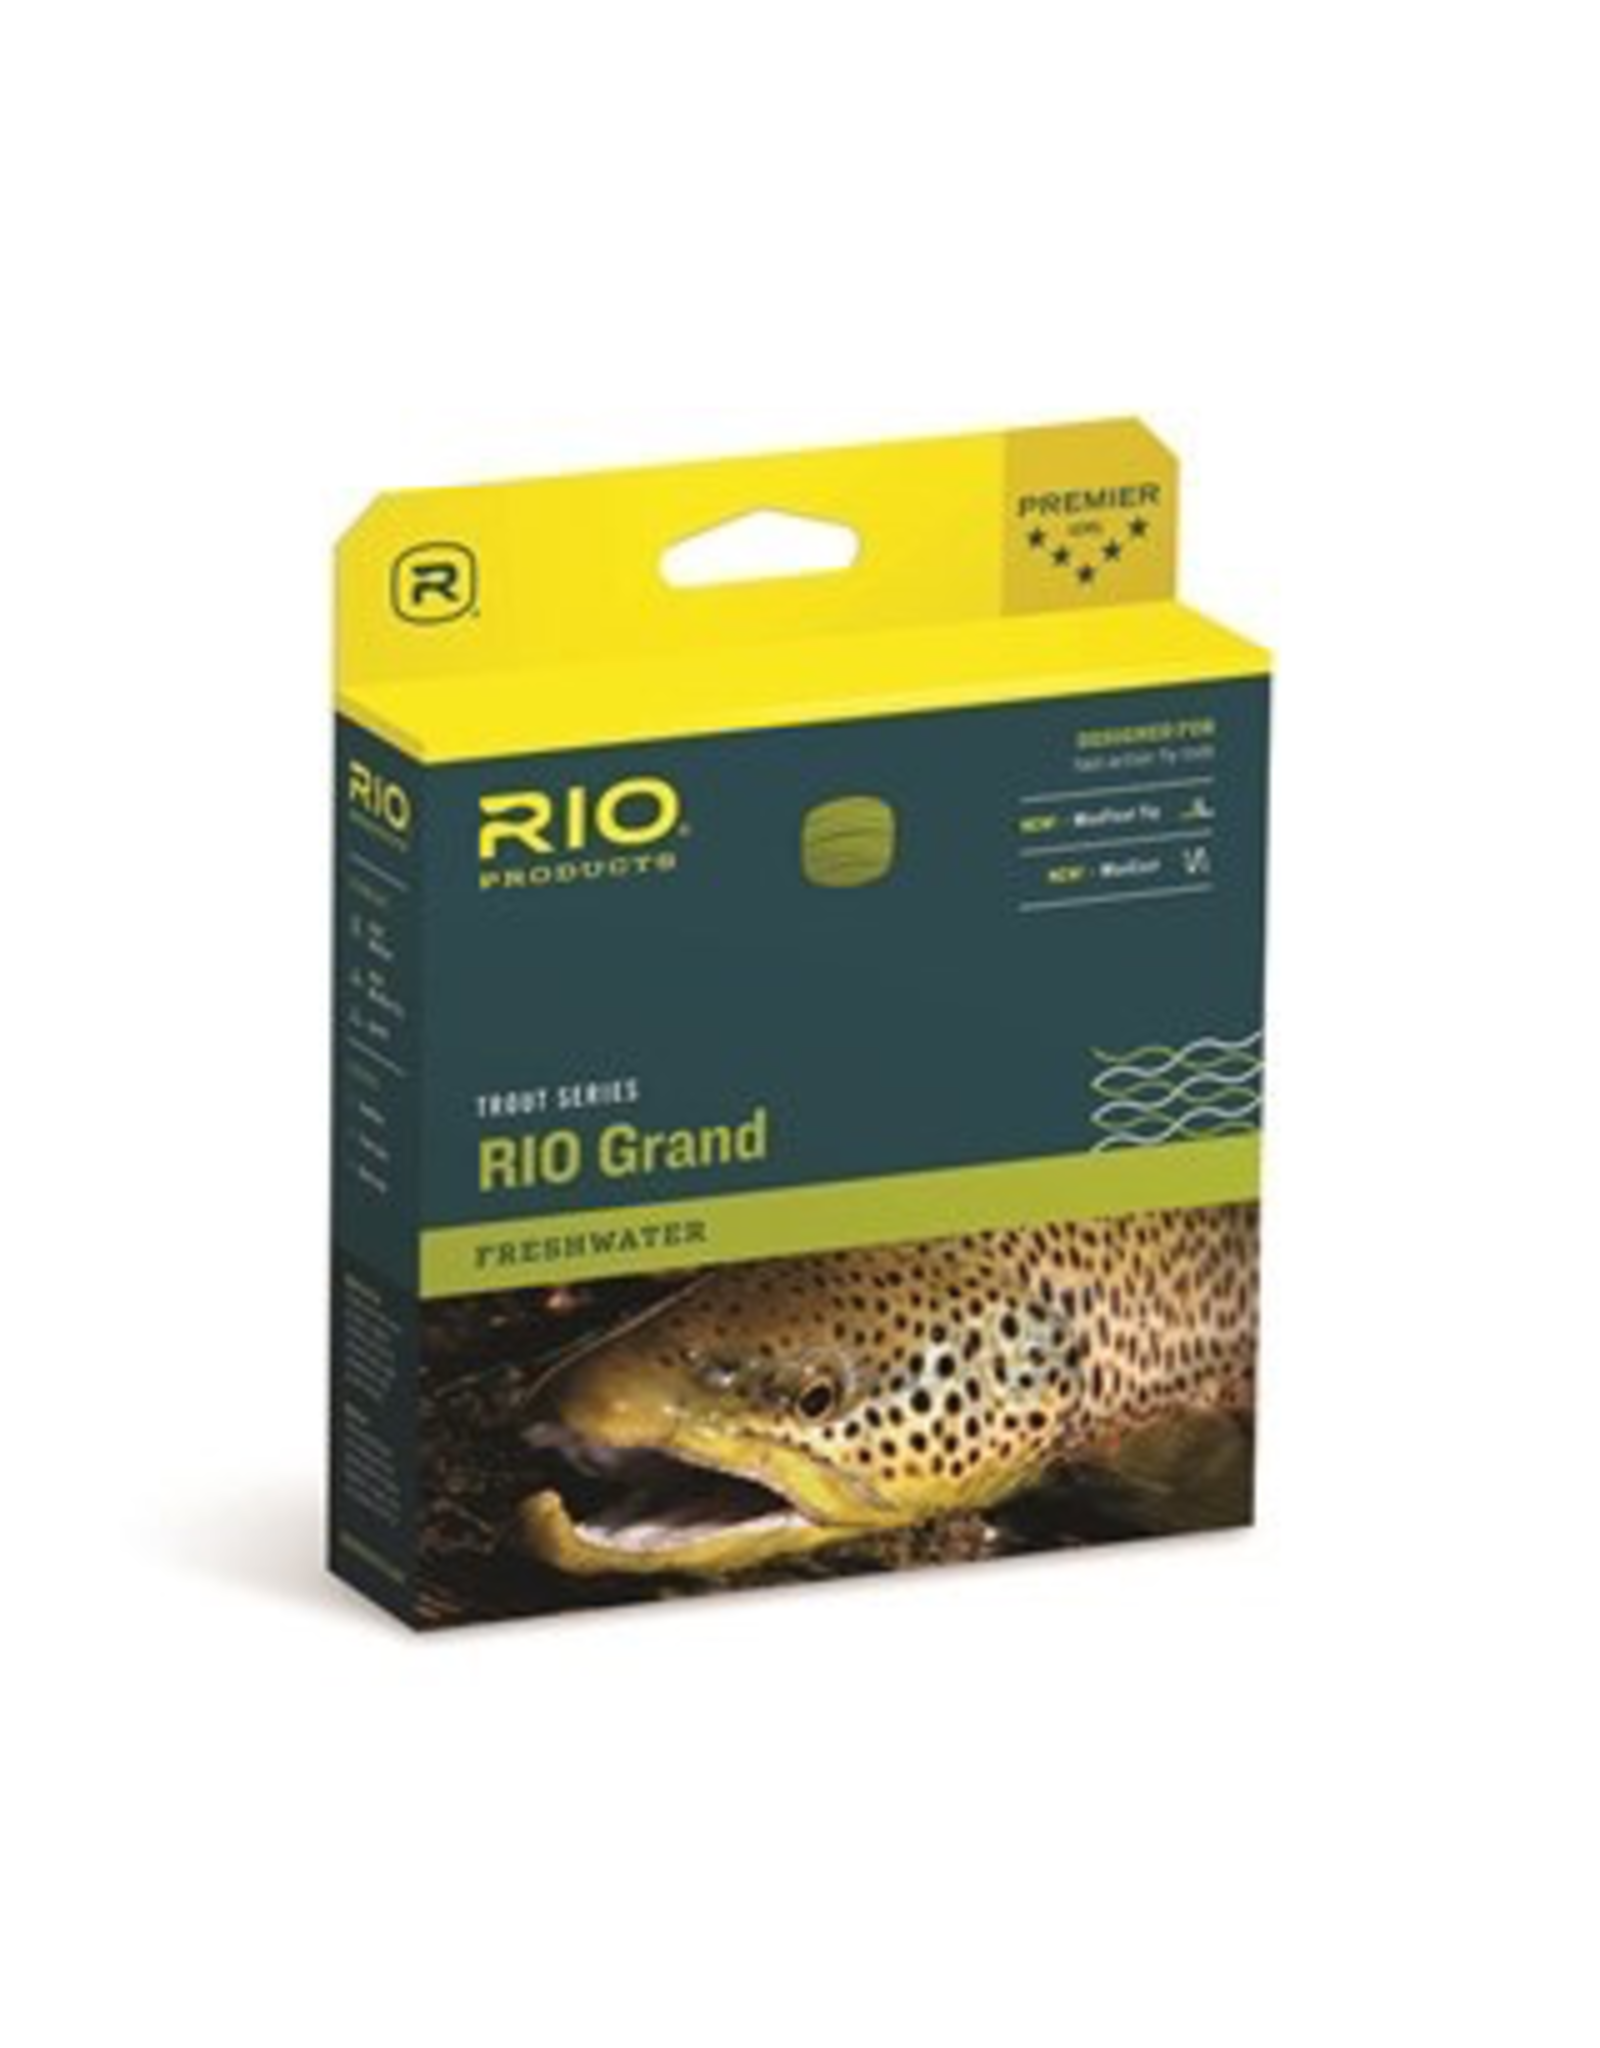 Designed For The Modern, Fast-Action Fly Rod